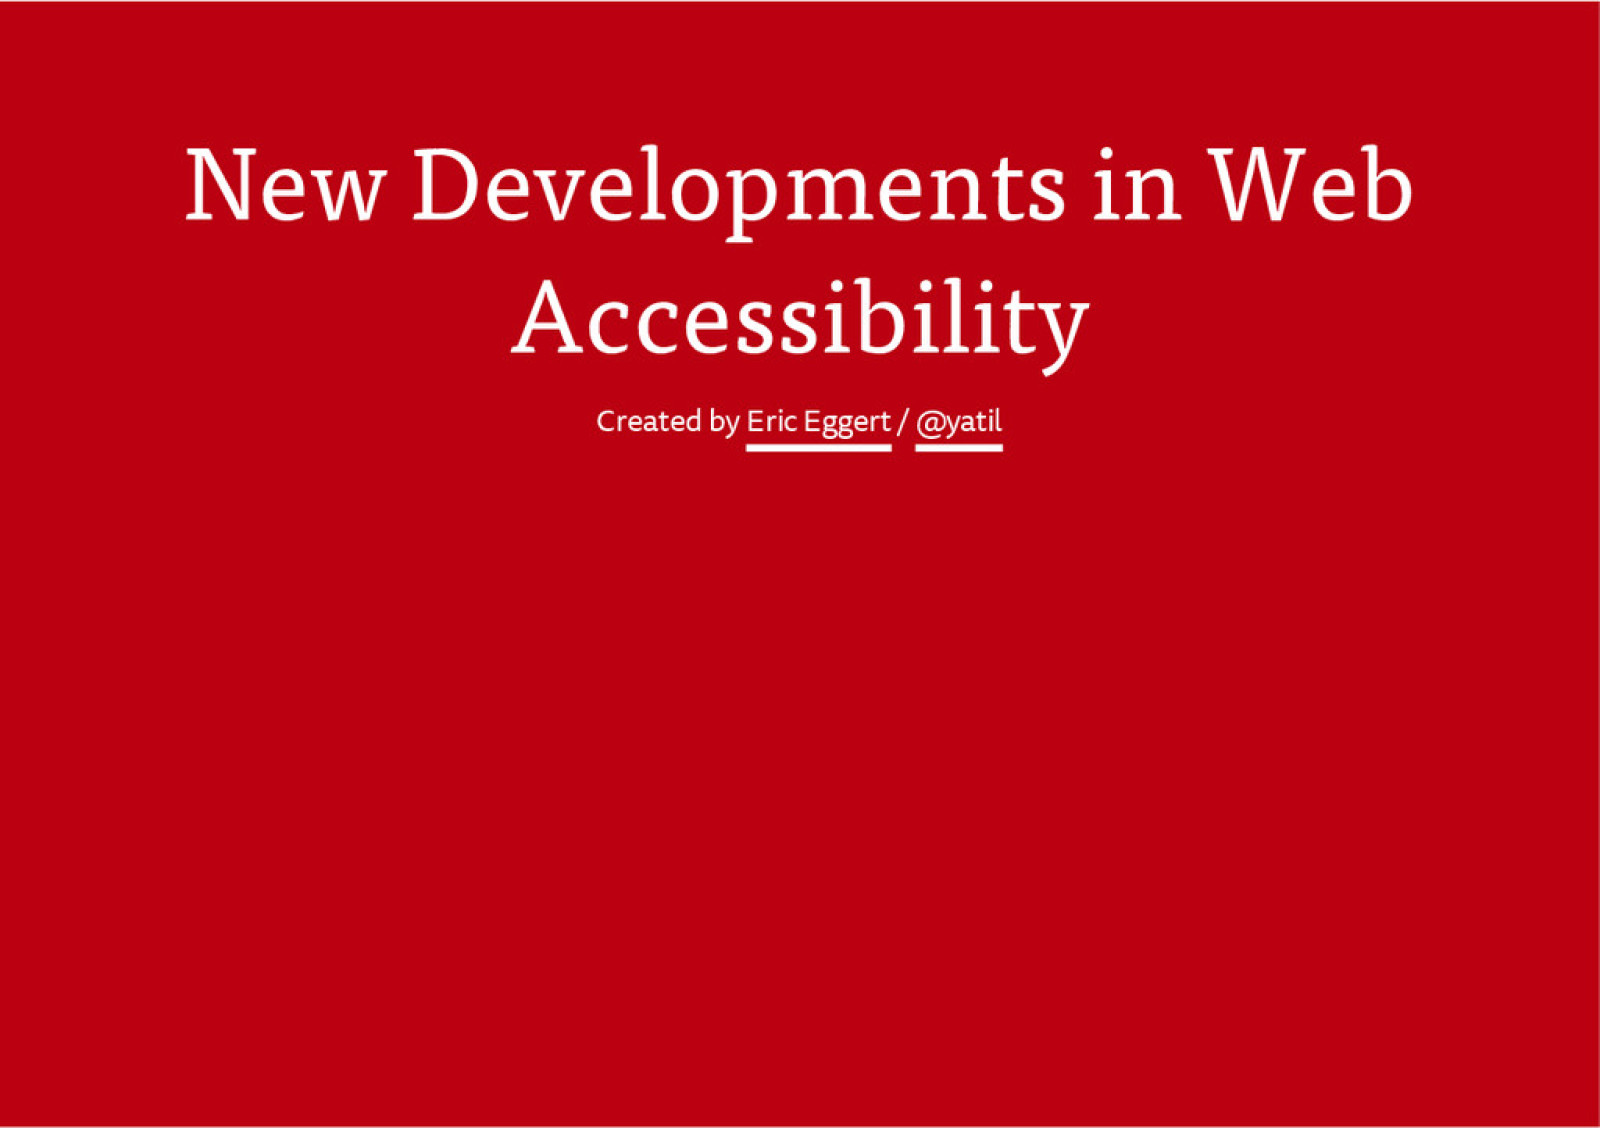 New Developments in Web Accessibility